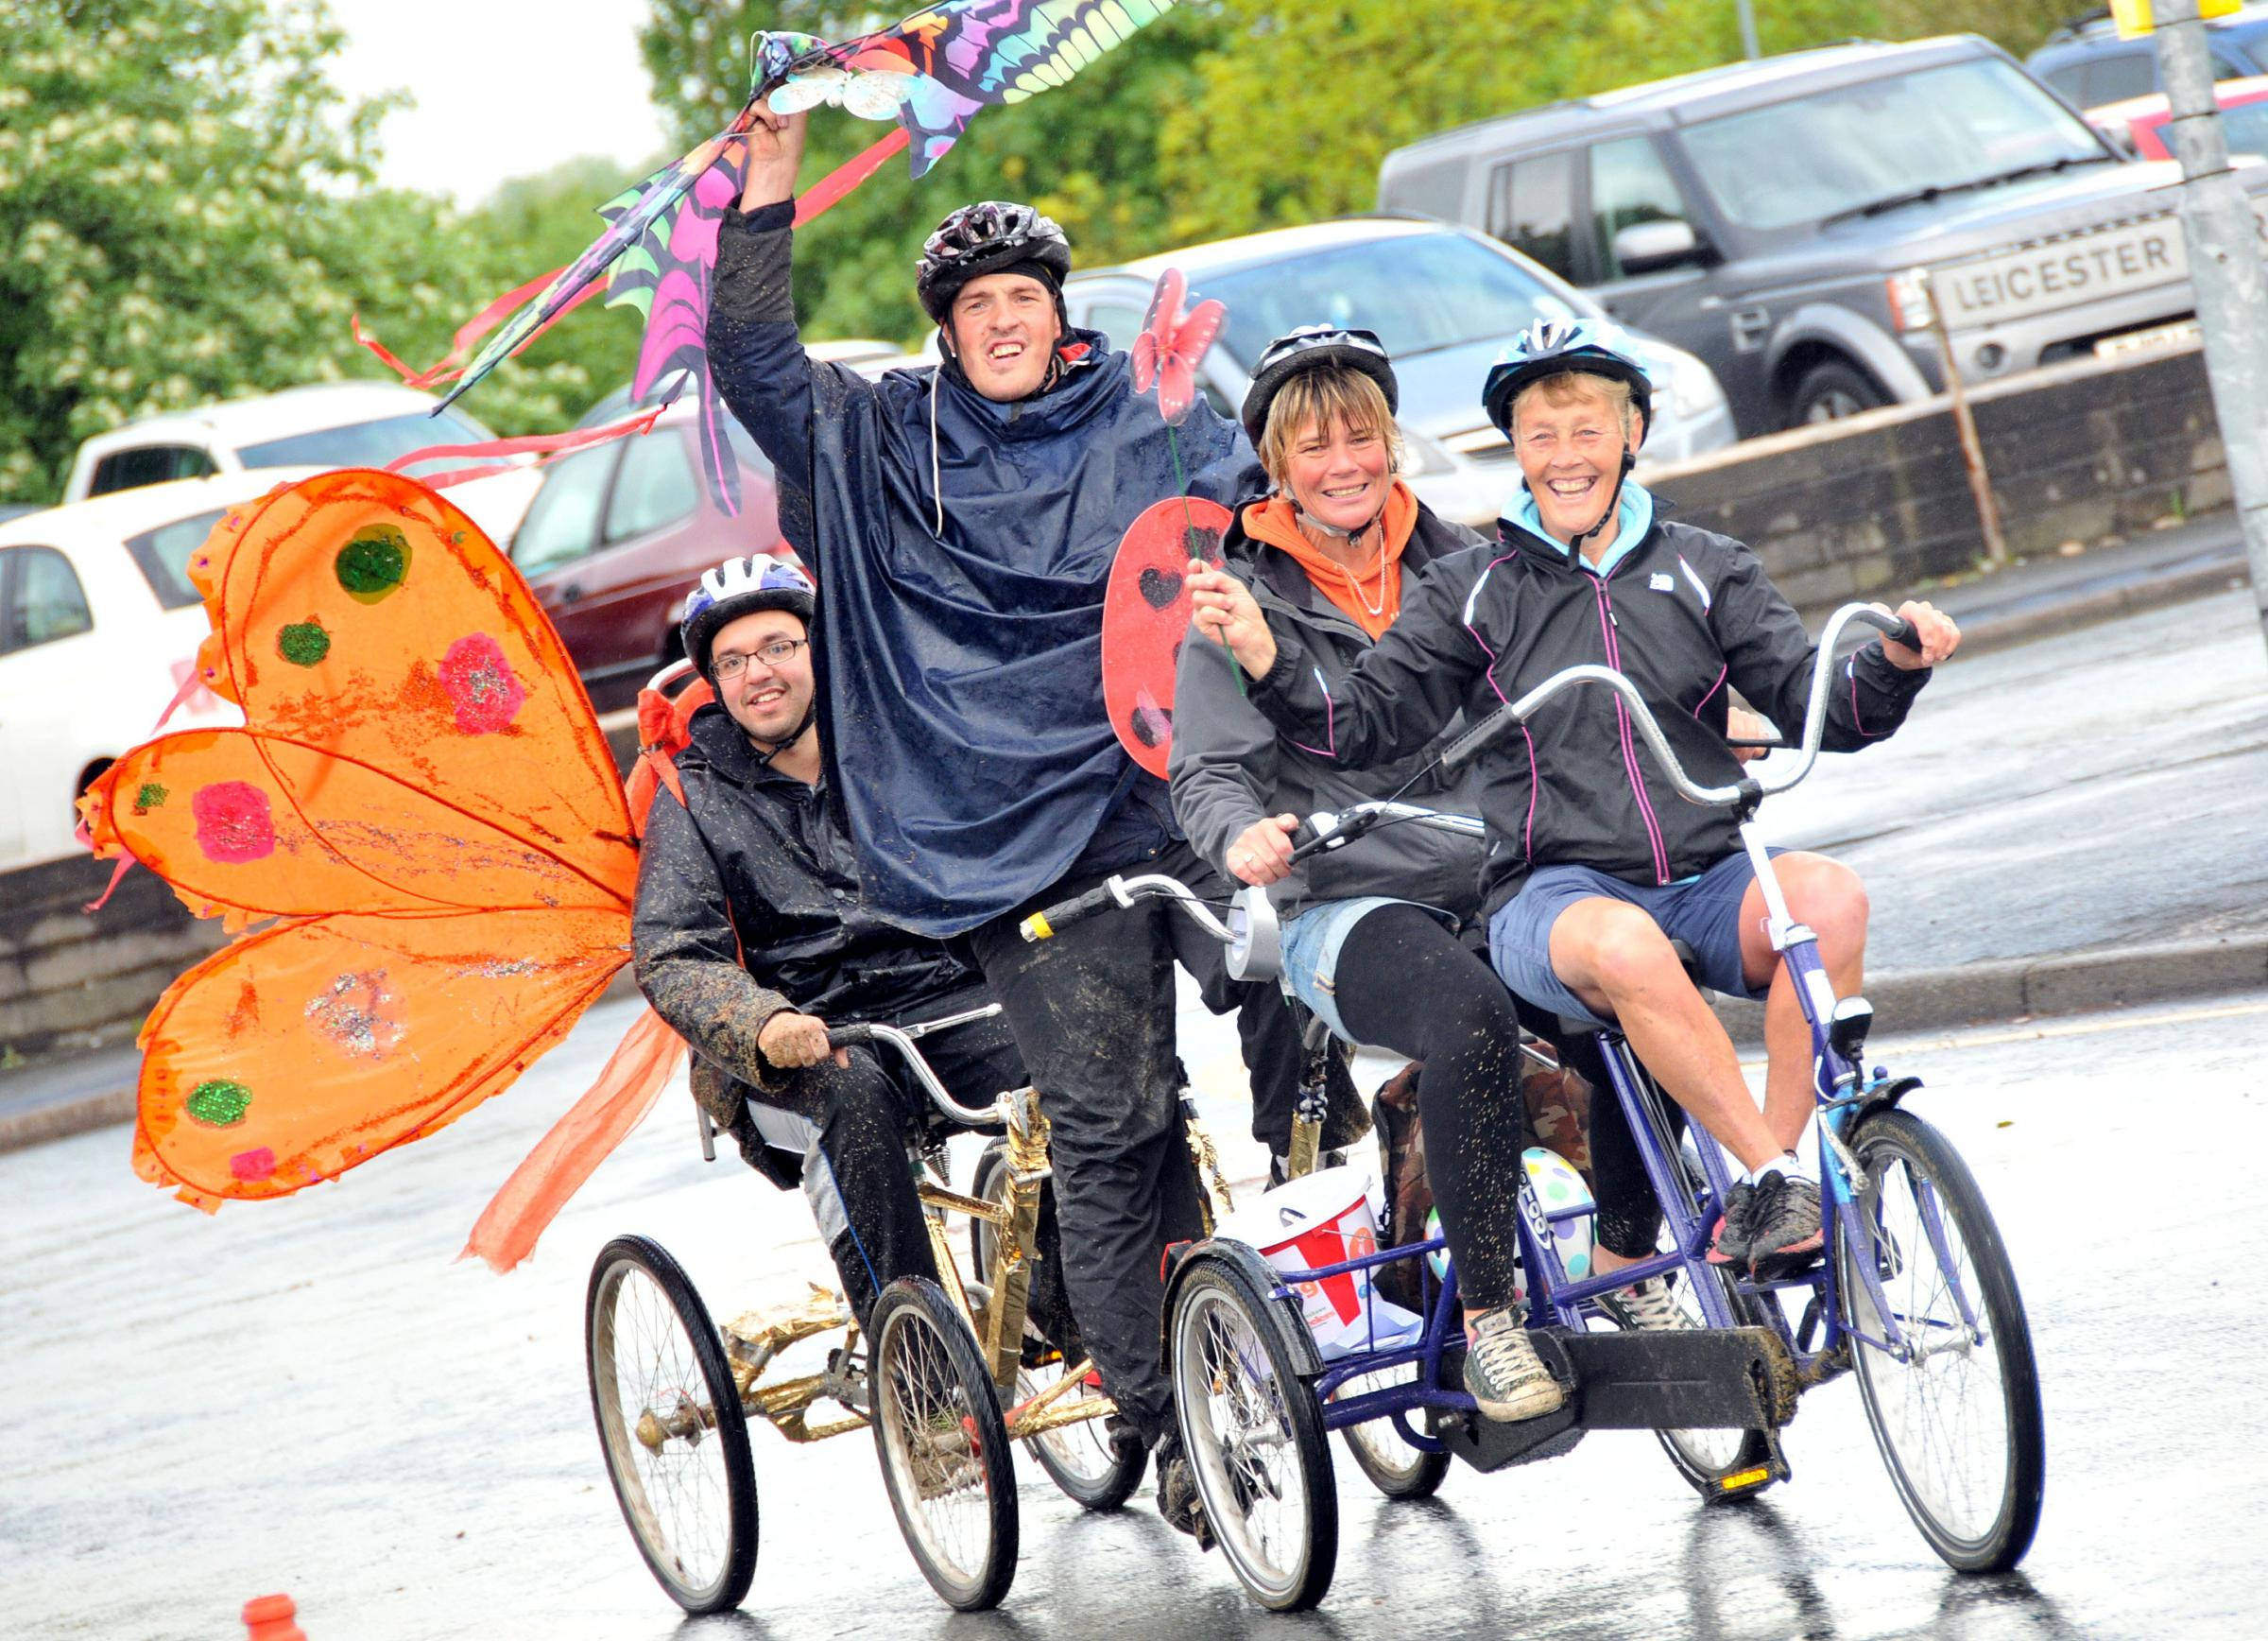 Northwich Guardian: The best dressed cyclists at the festival